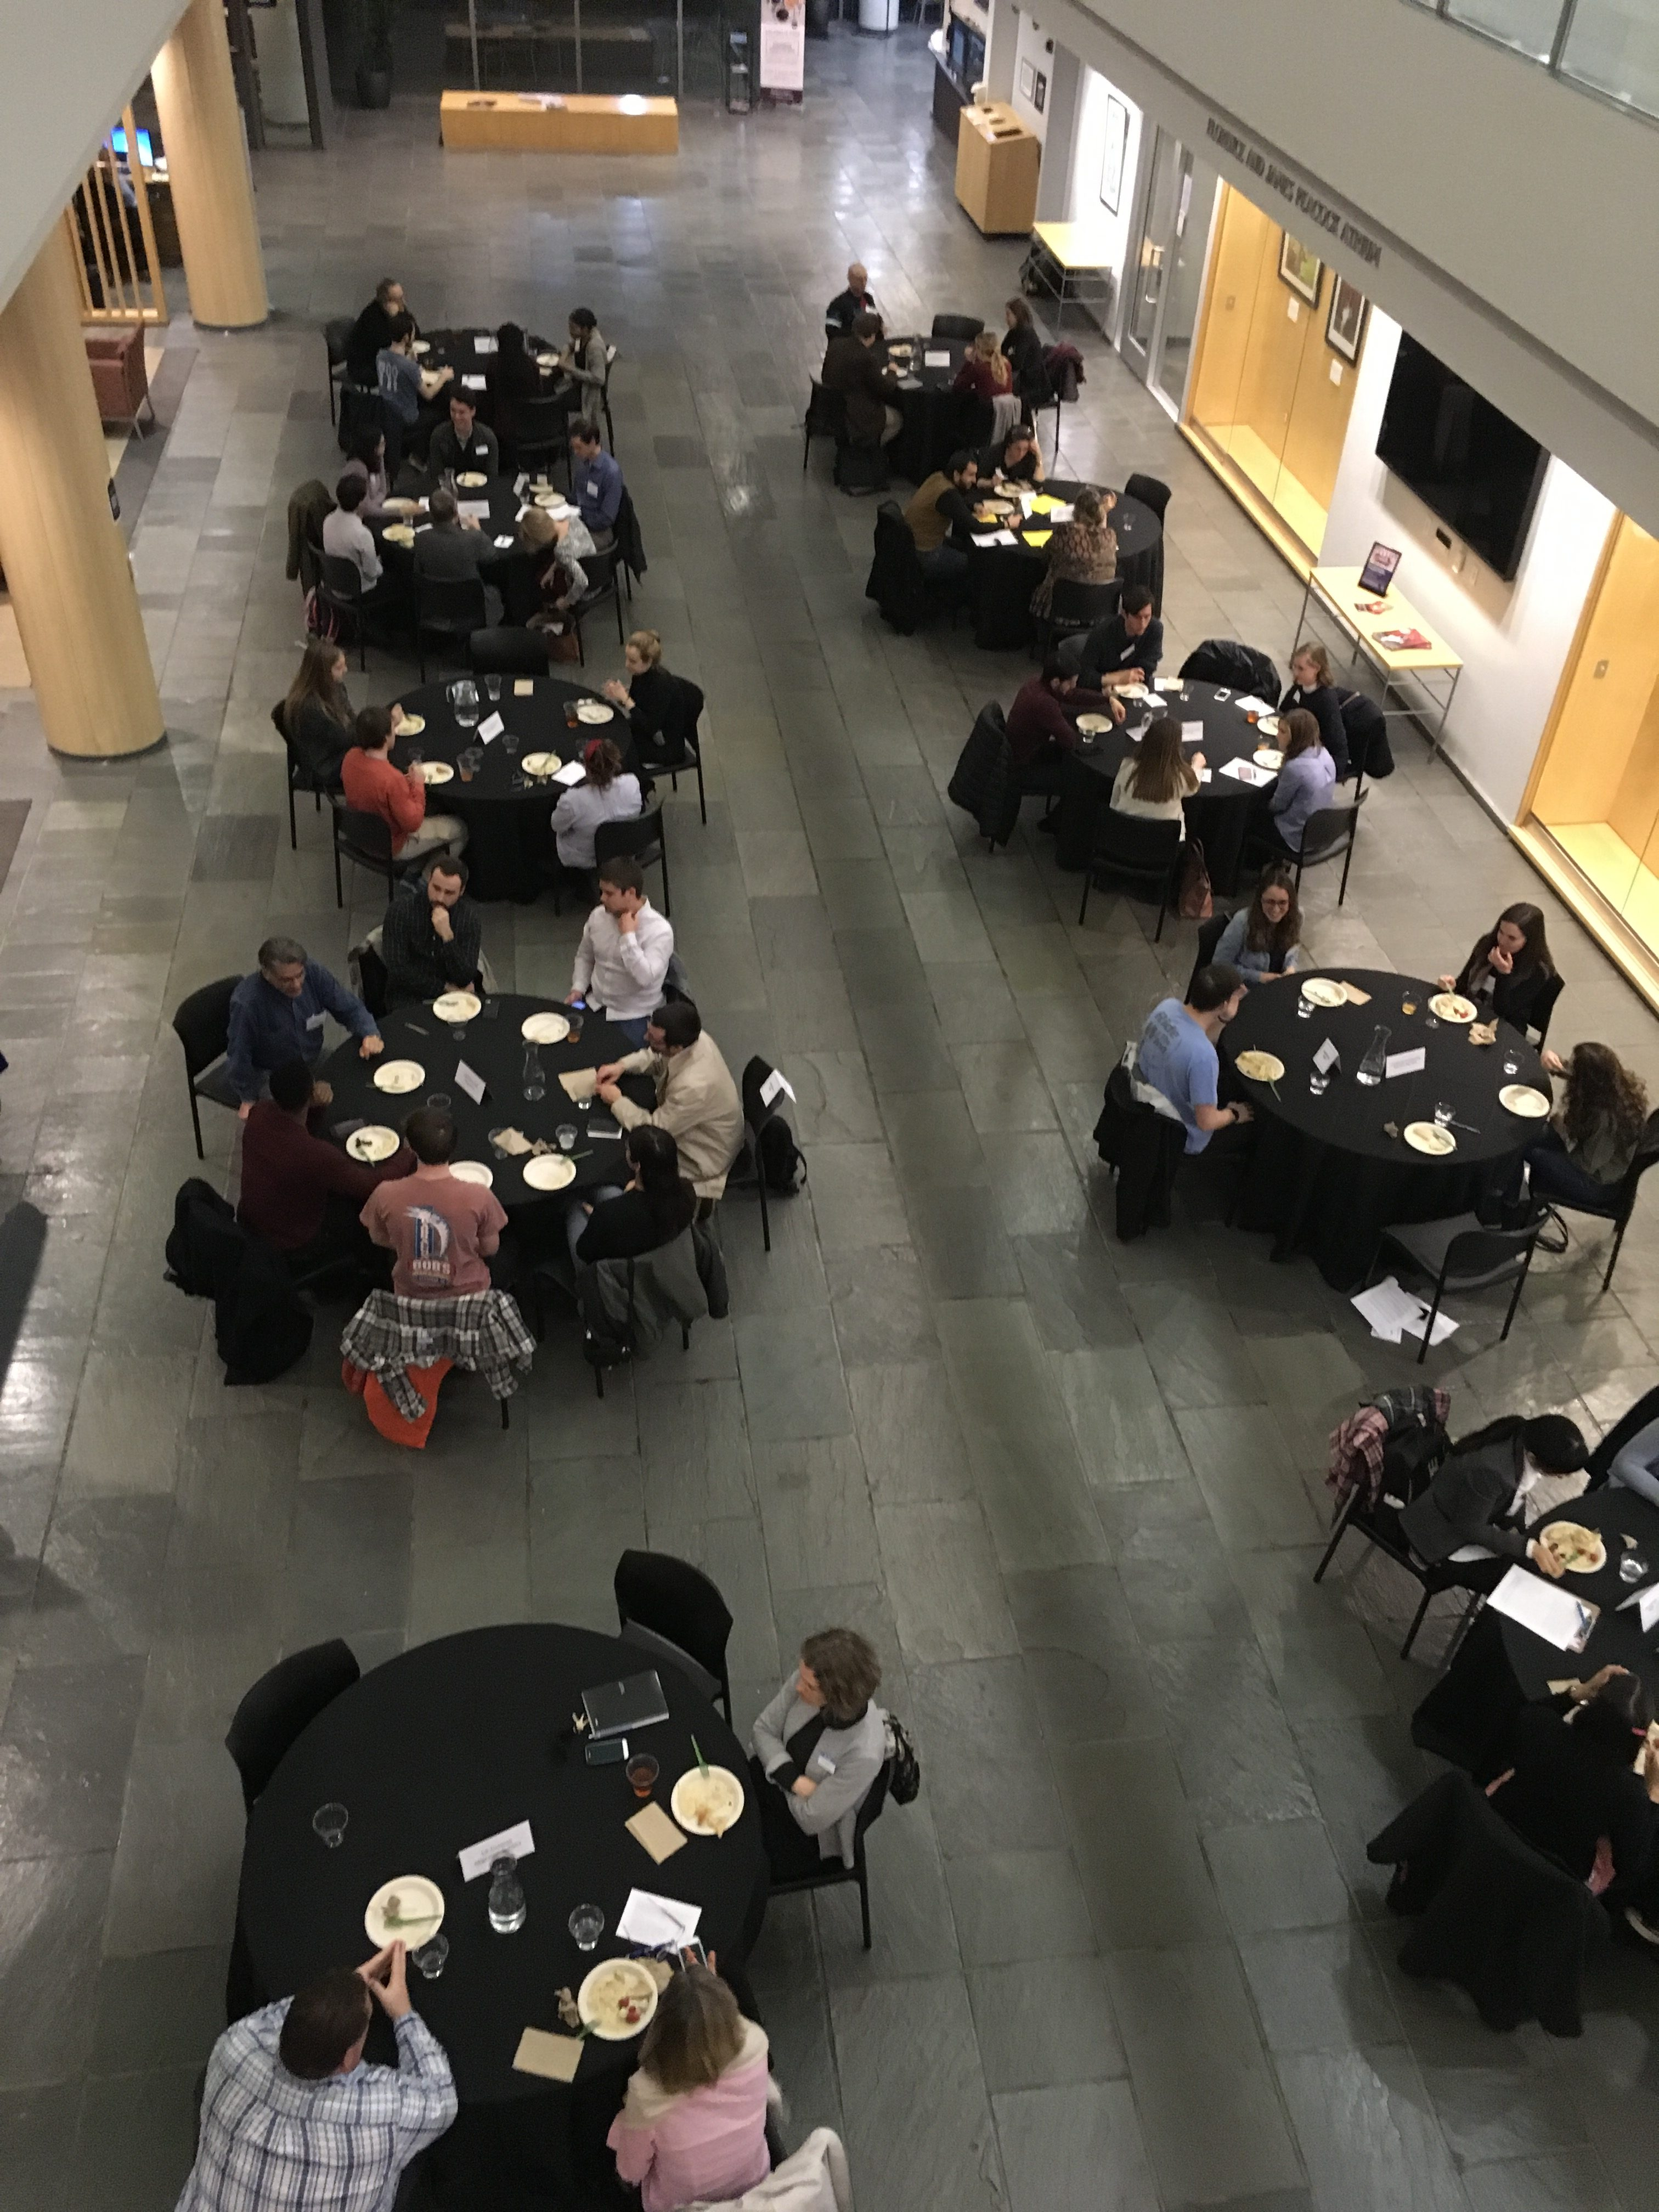 People sitting down at tables and eating in the atrium of the Global Education Center.